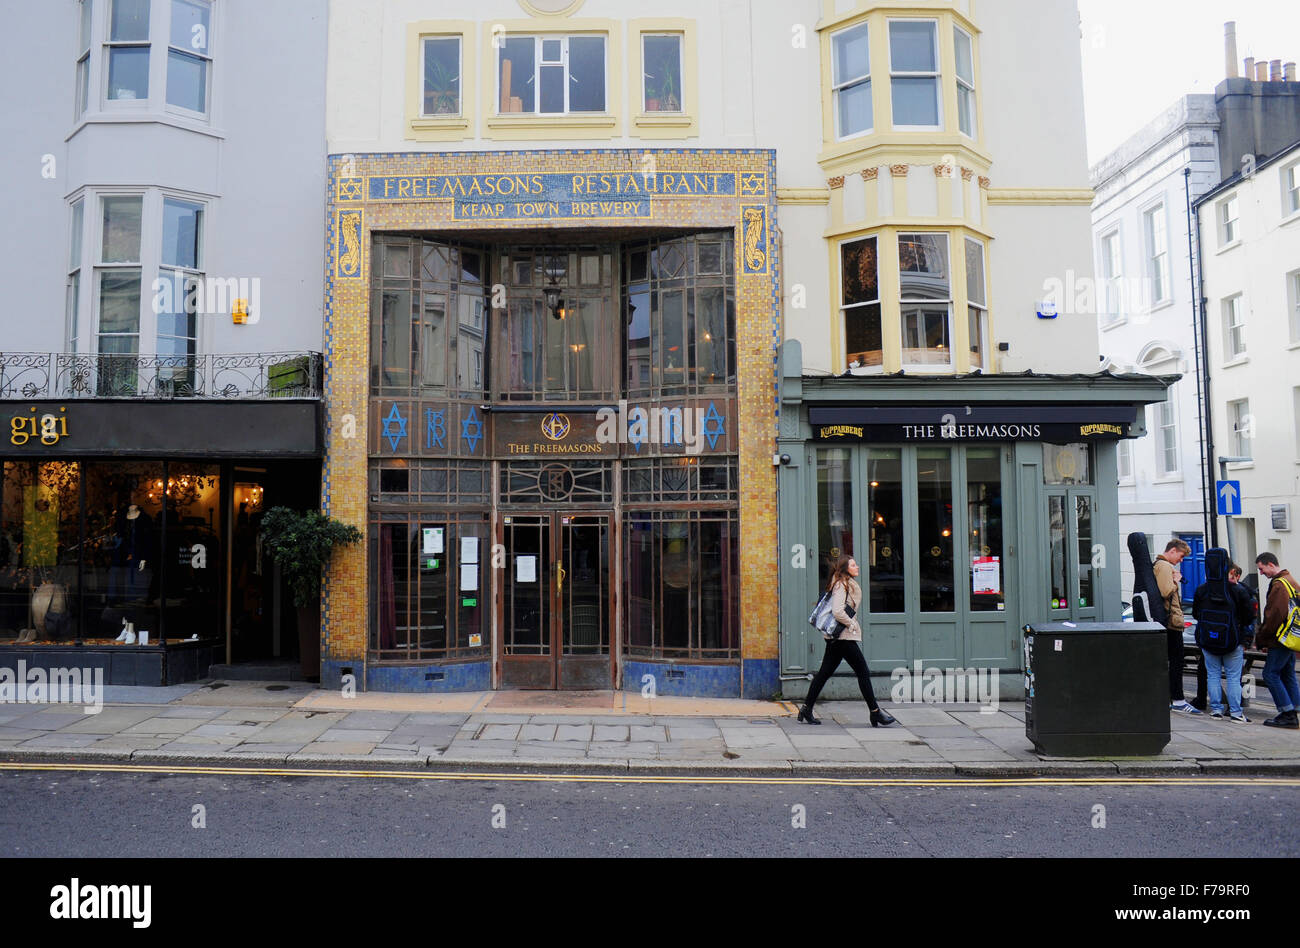 The Freemasons also known as the Freemasons Inn and the Freemasons Inn and Restaurant in Brighton UK - Stock Image